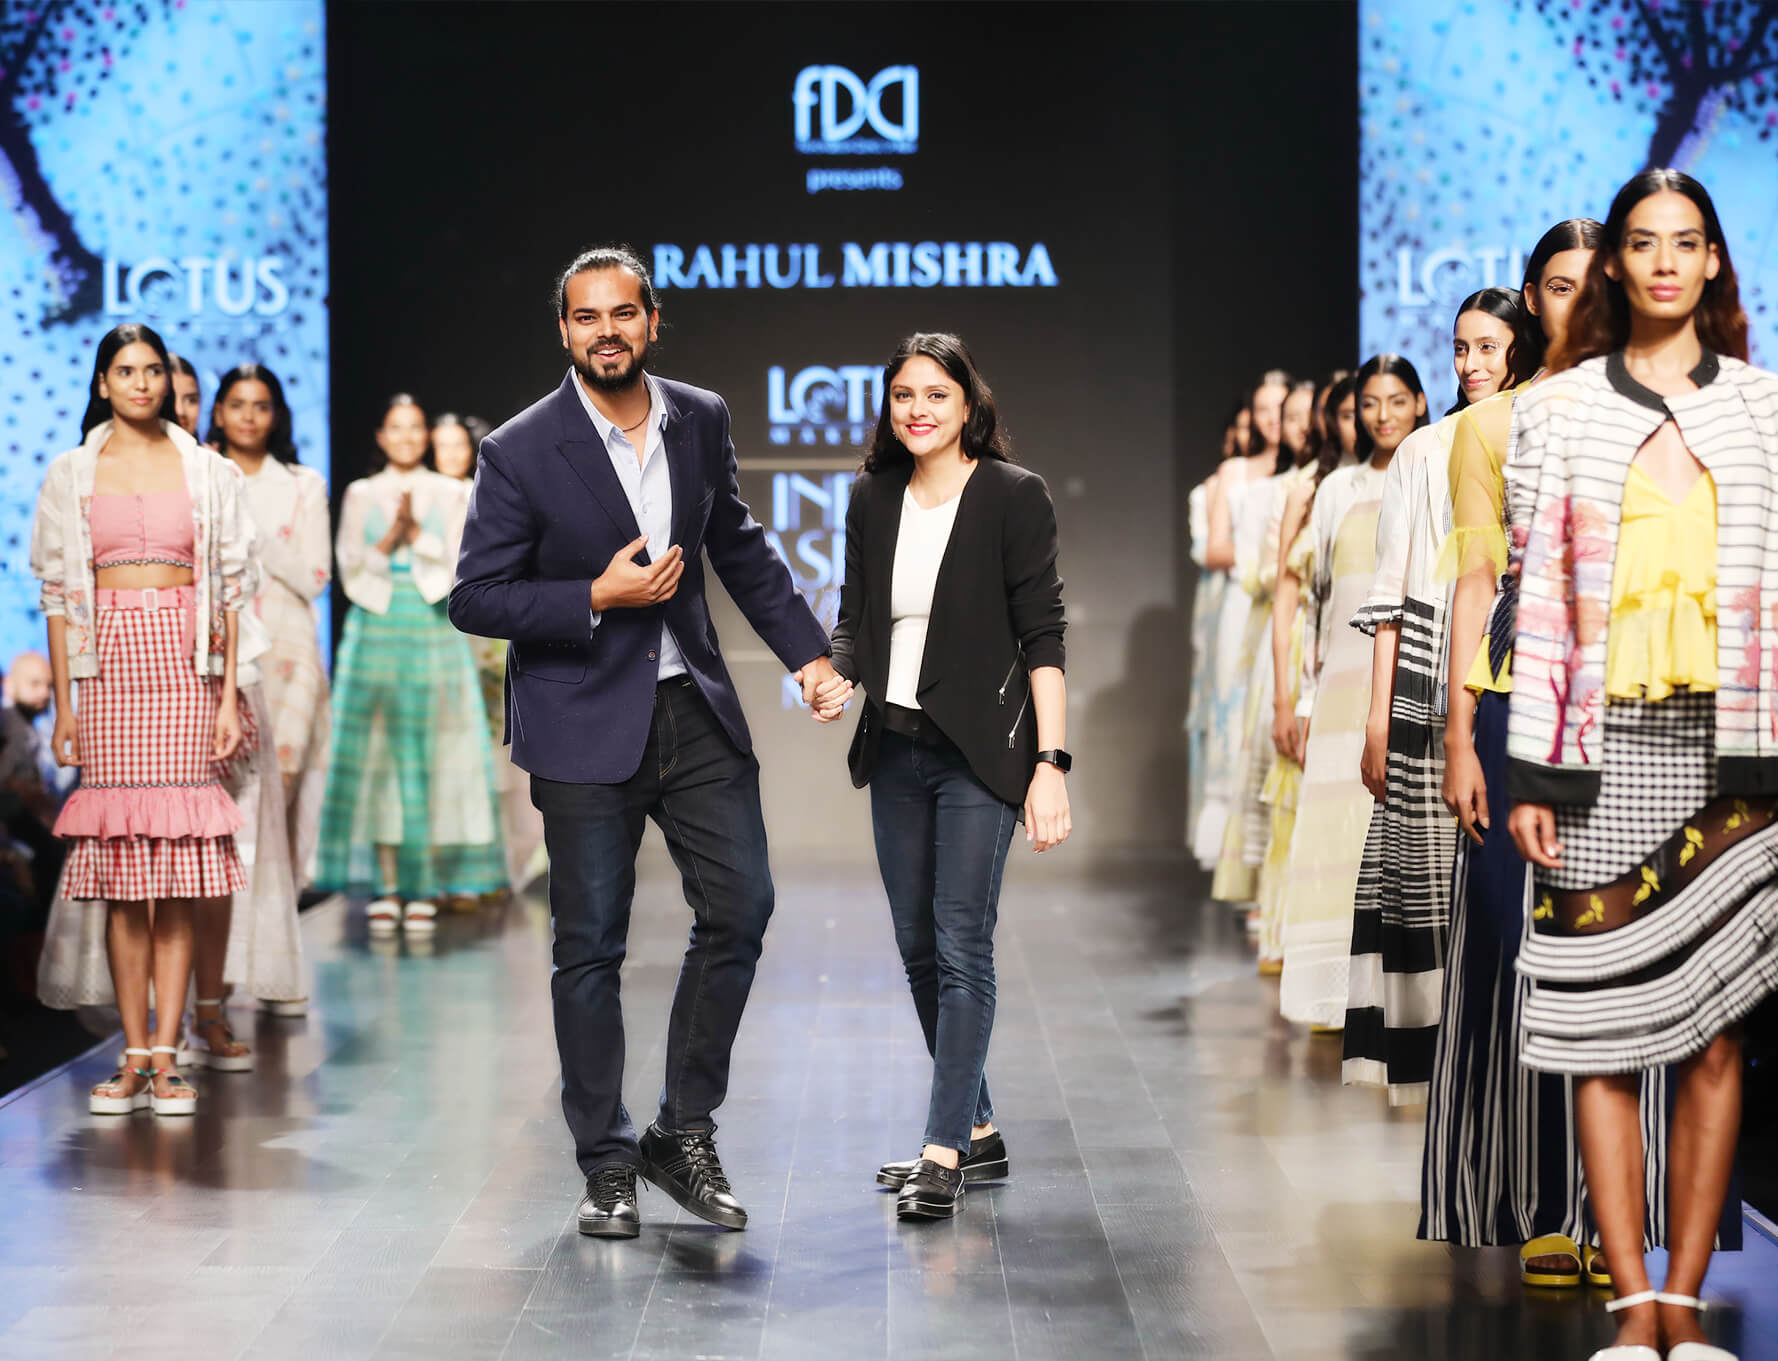 Designer Rahul and Divya Mishra